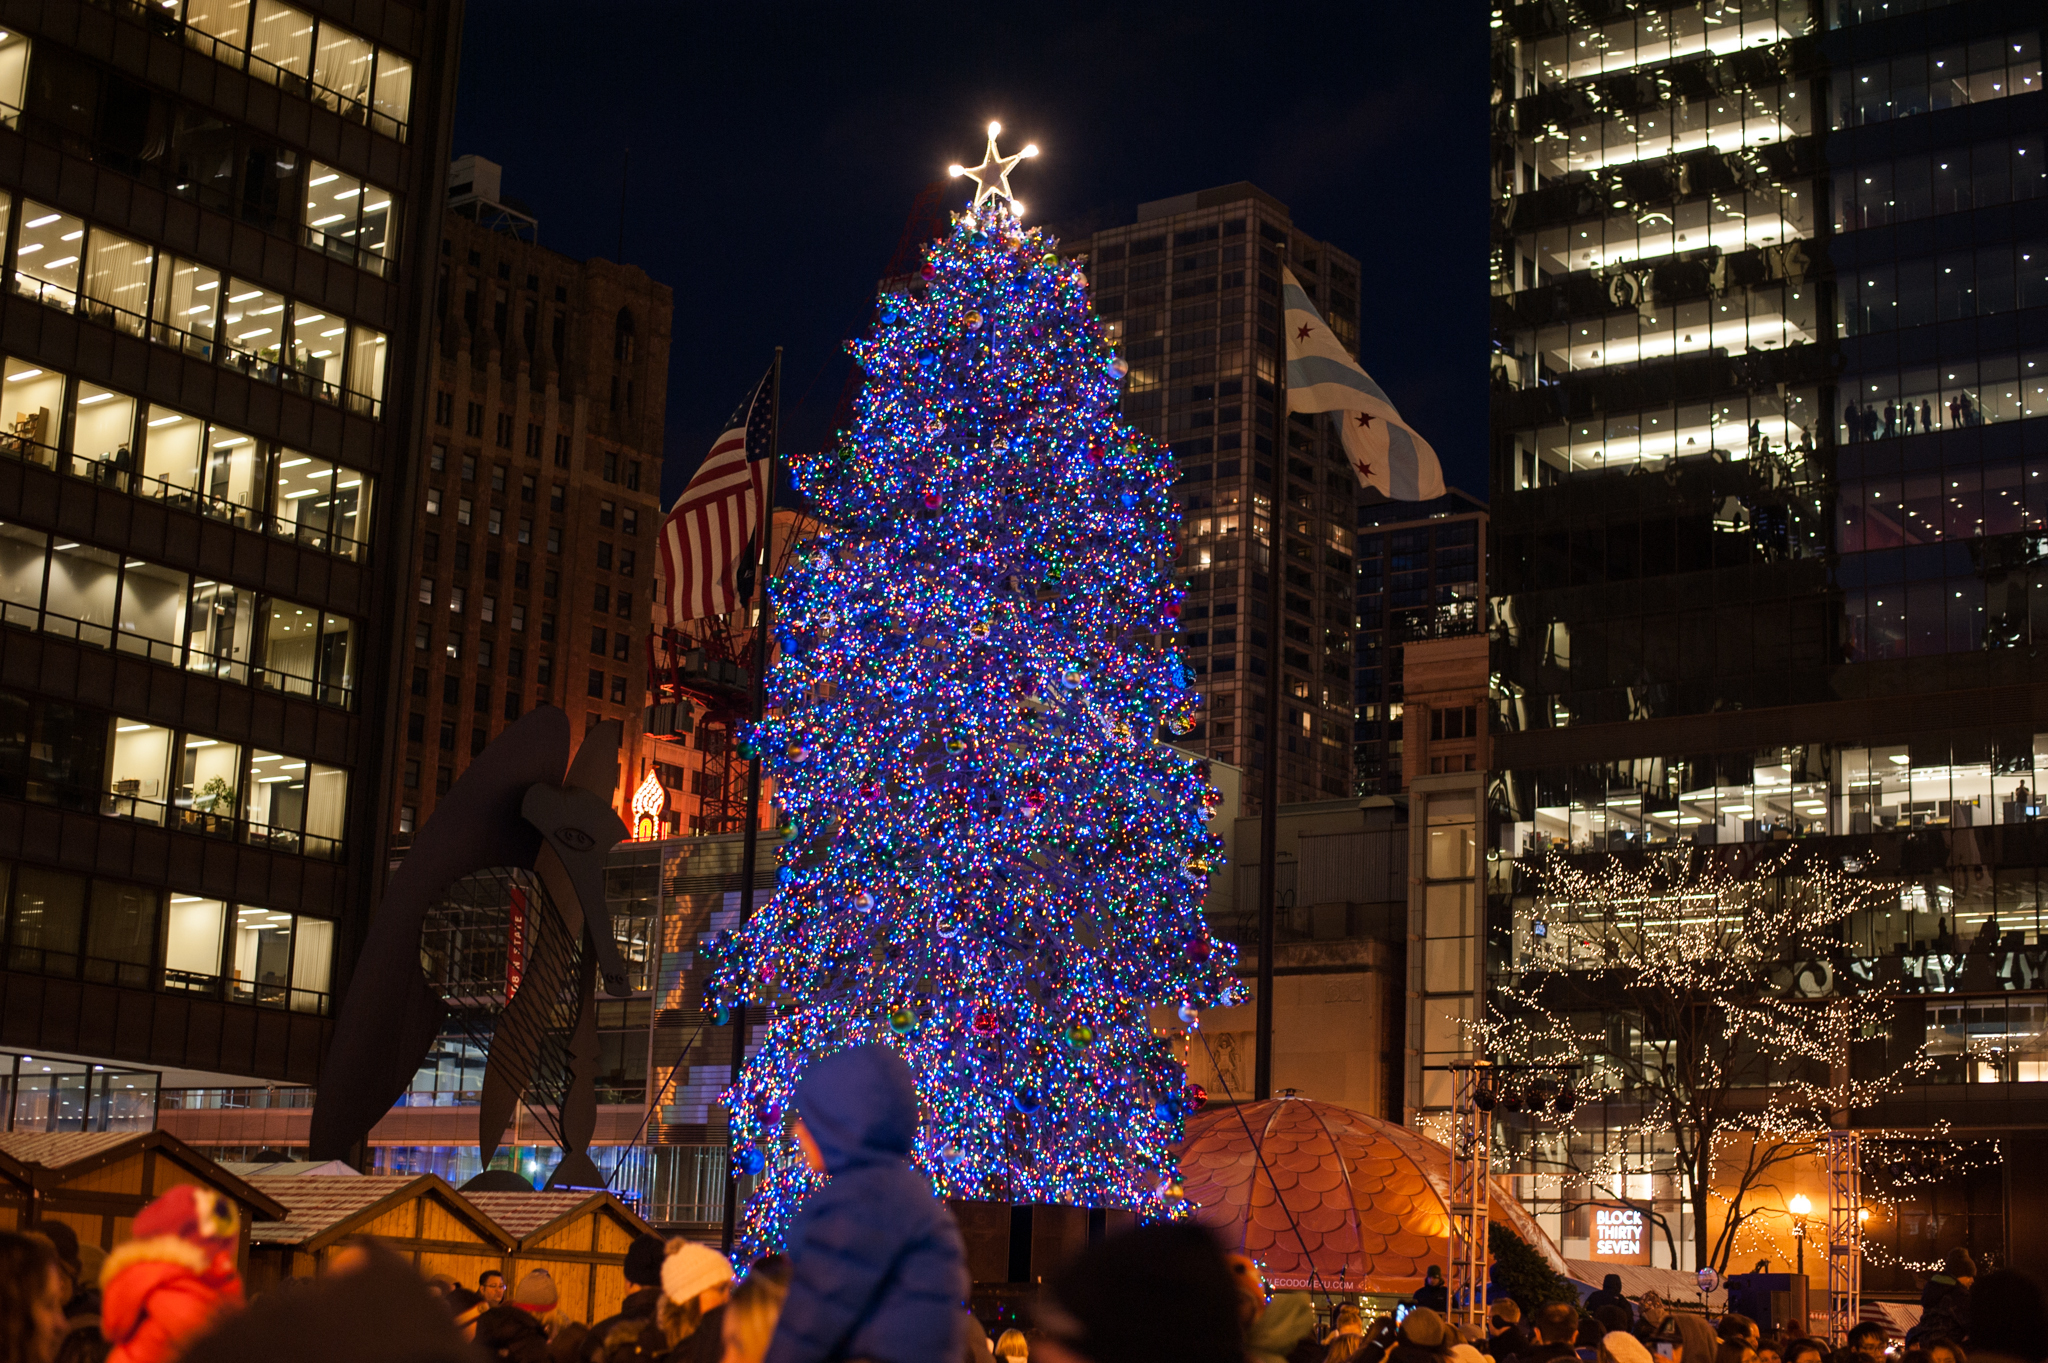 Chicago's official Christmas tree moving to Millennium Park